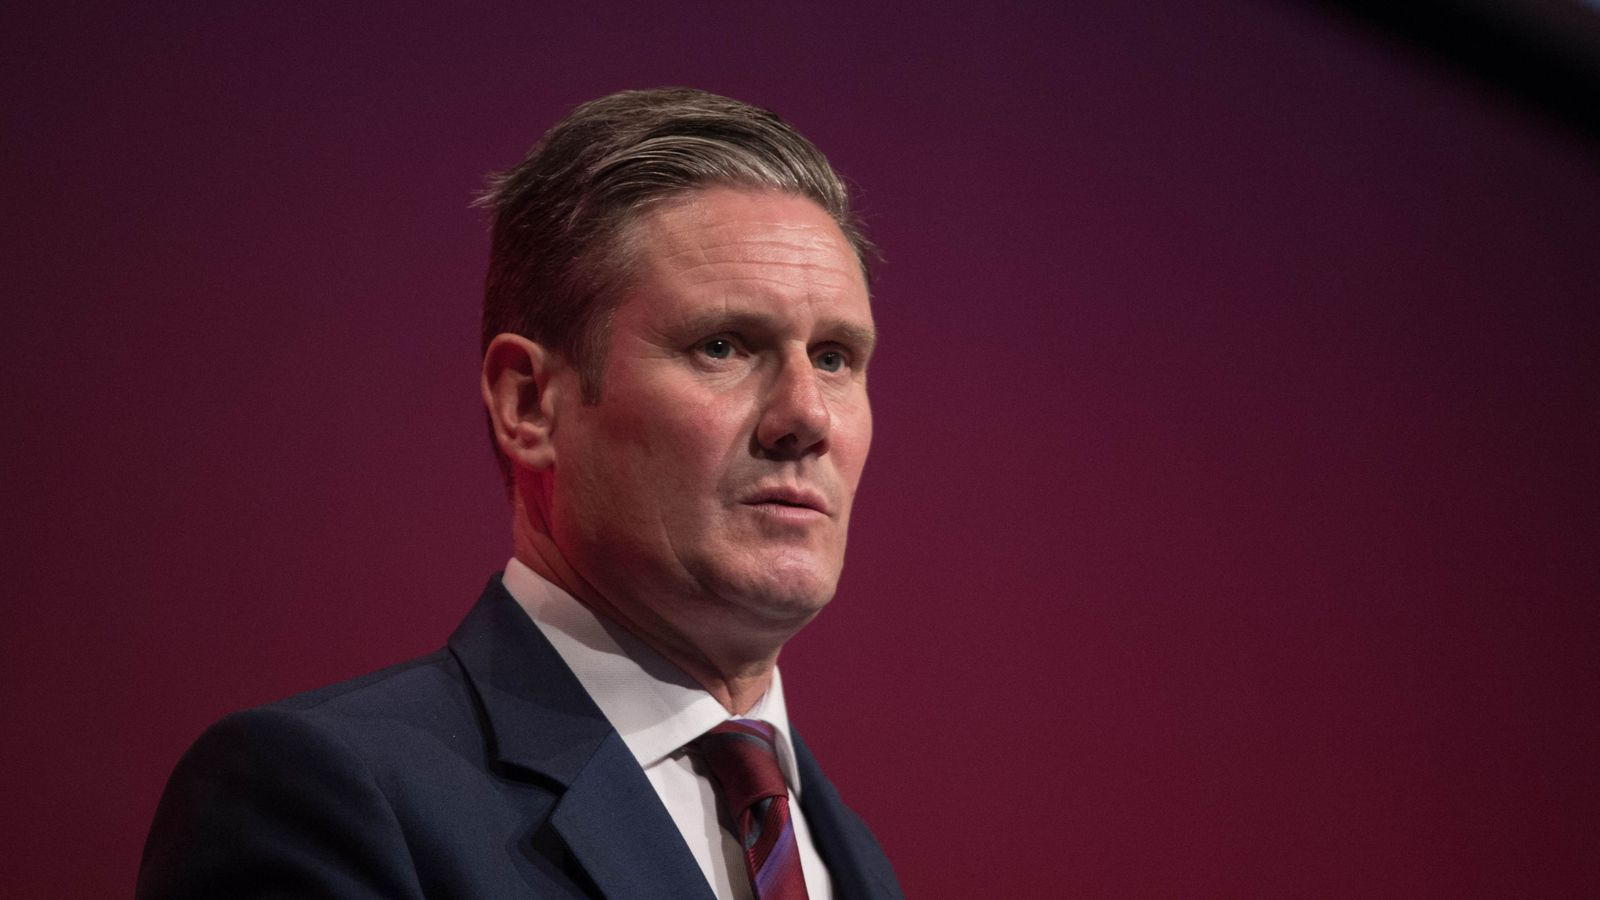 Labour to vote against PM's Brexit deal, says Sir Keir Starmer